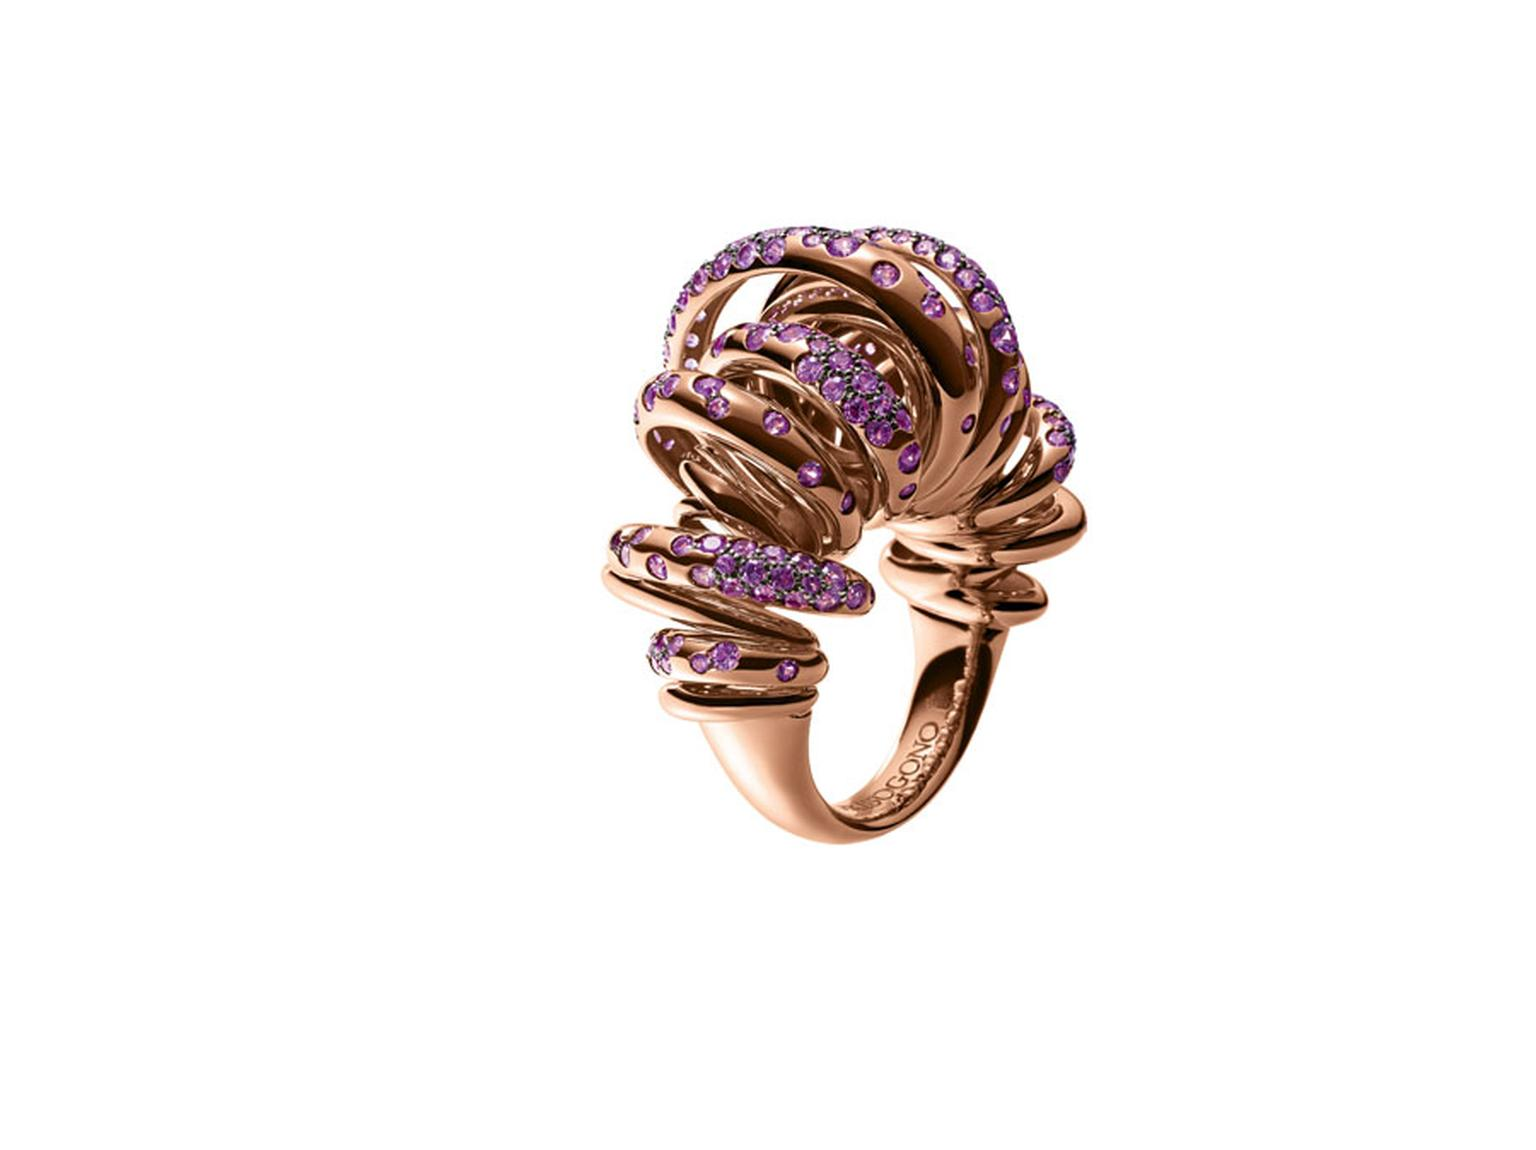 Rose gold, sun-inspired ring from de GRISOGONO's 'Sole' collection.